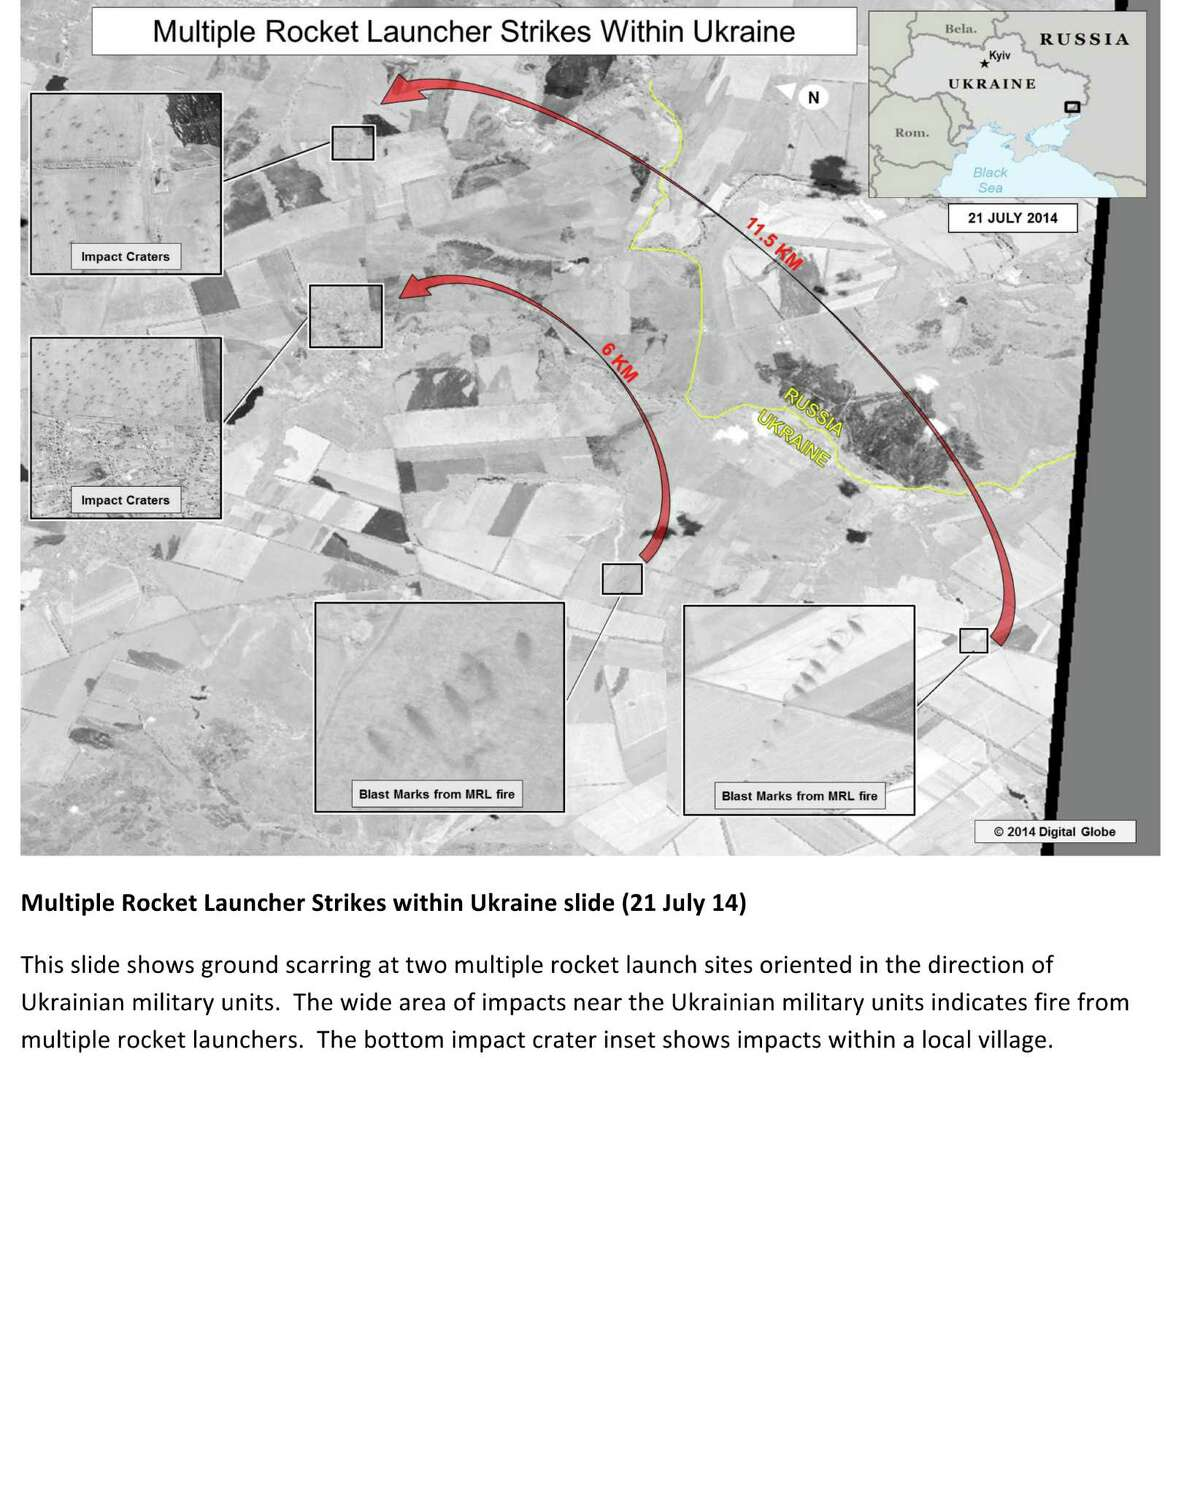 This fourth page of a four page document released by the U.S. State Department in Washington, July 27, 2014 shows a satellite image that purports to shows ground scarring at two multiple rocket launch sites oriented in the direction of Ukraine military units. The wide area of impacts near the Ukrainian military units indicates fire from multiple rocket launchers. The bottom impact crater shows impact within a local village. The United States says the images back up its claims that rockets have been fired from Russia into eastern Ukraine and heavy artillery for separatists has also crossed the border.AP story: The U.S. State Department, meanwhile, released satellite images that it says back up its claims that rockets have been fired from Russia into eastern Ukraine and heavy artillery for separatists has also crossed the border.